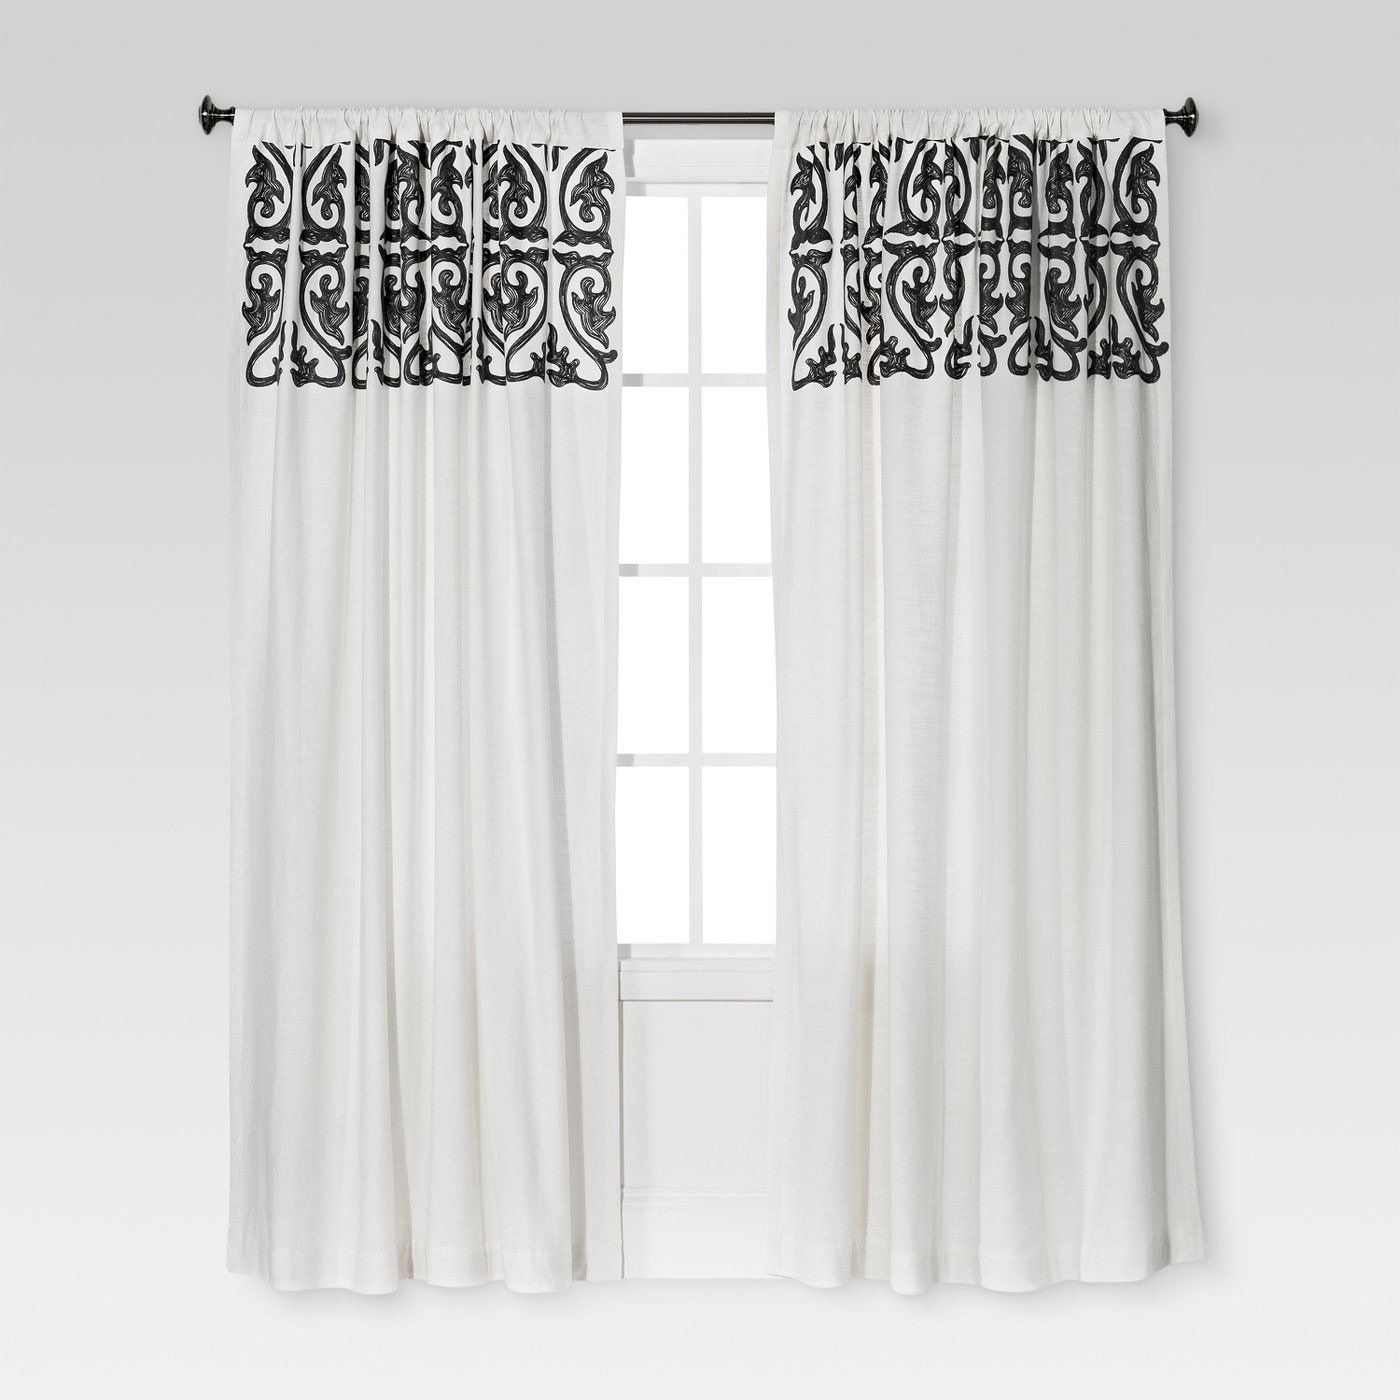 84 in 2021 living room decor curtains